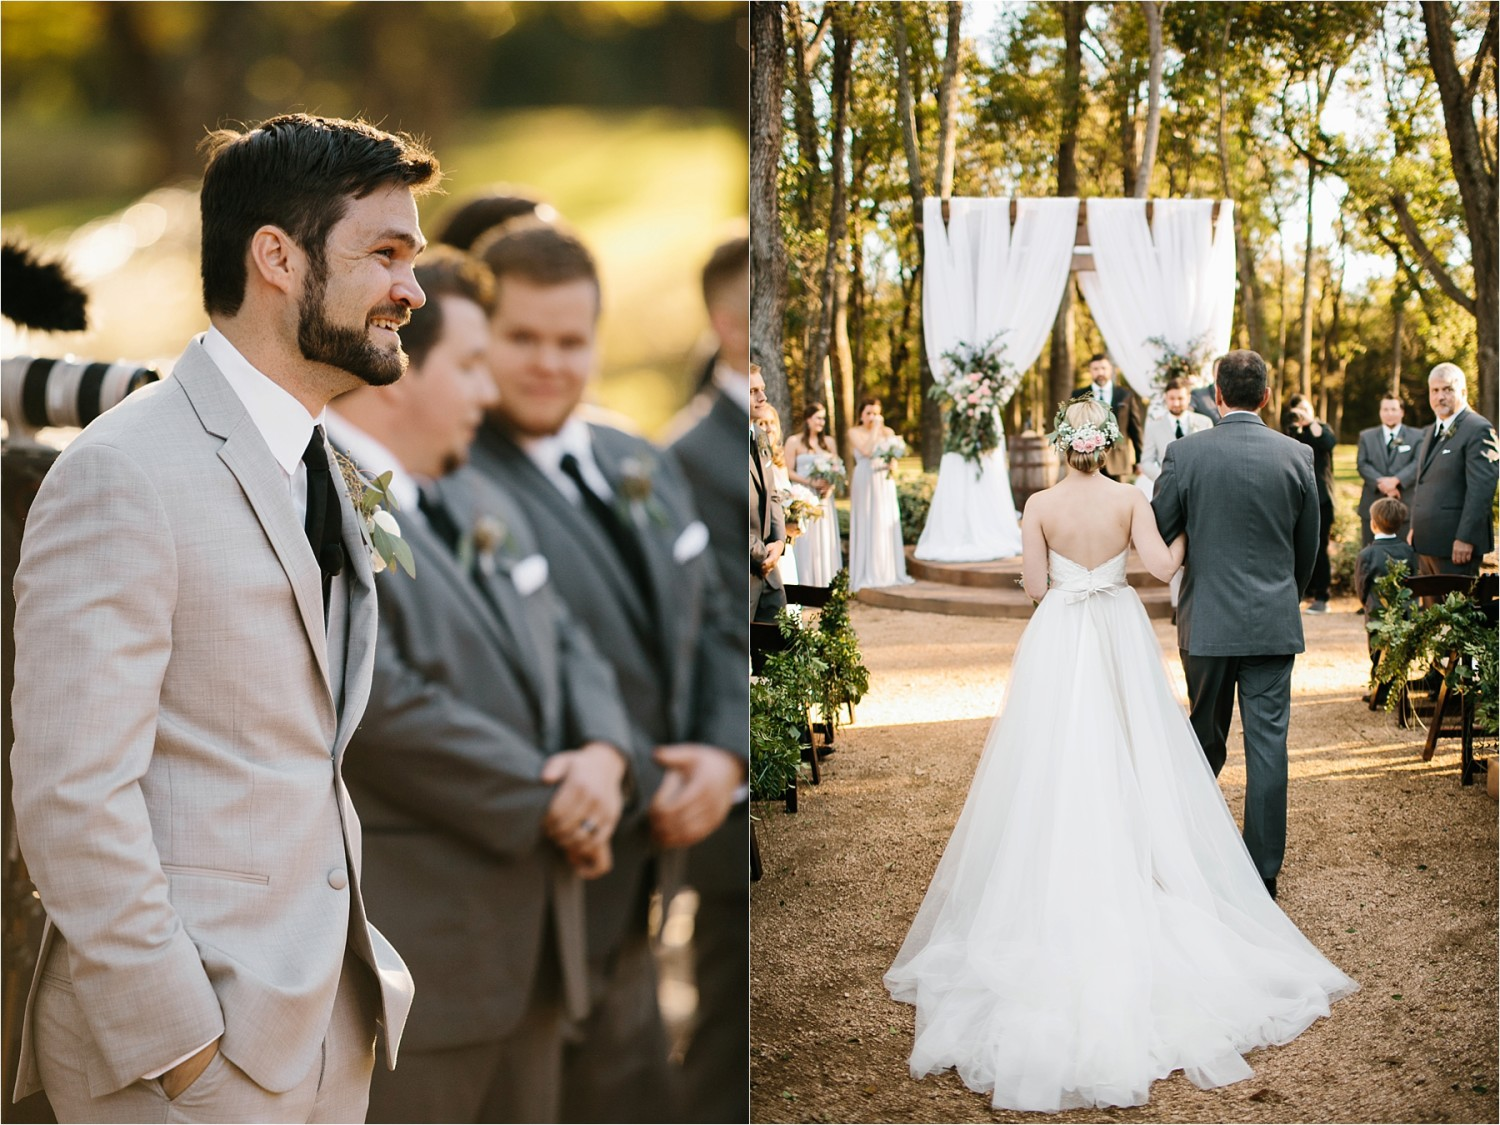 brad-lara-__-a-grey-and-blush-pink-intimate-wedding-at-hidden-waters-event-center-in-waxahachie-tx-by-north-texas-wedding-photographer-rachel-meagan-photography-_-044